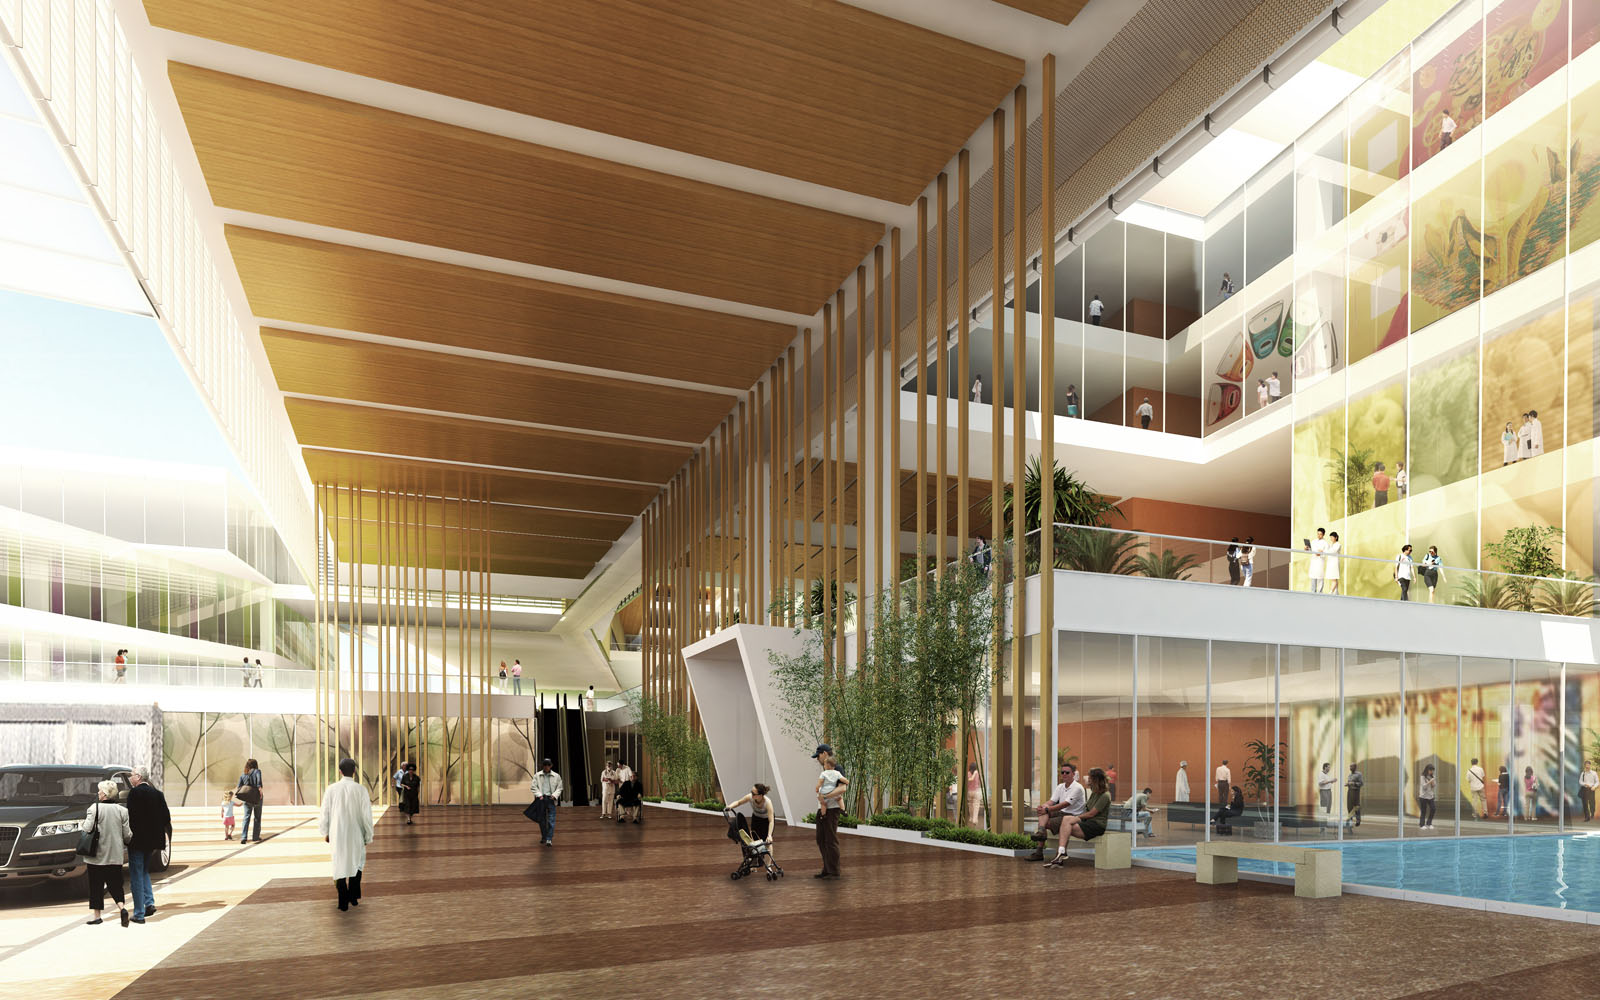 Seng kang general hospital saa architects singapore for Lloyds architecture planning interiors